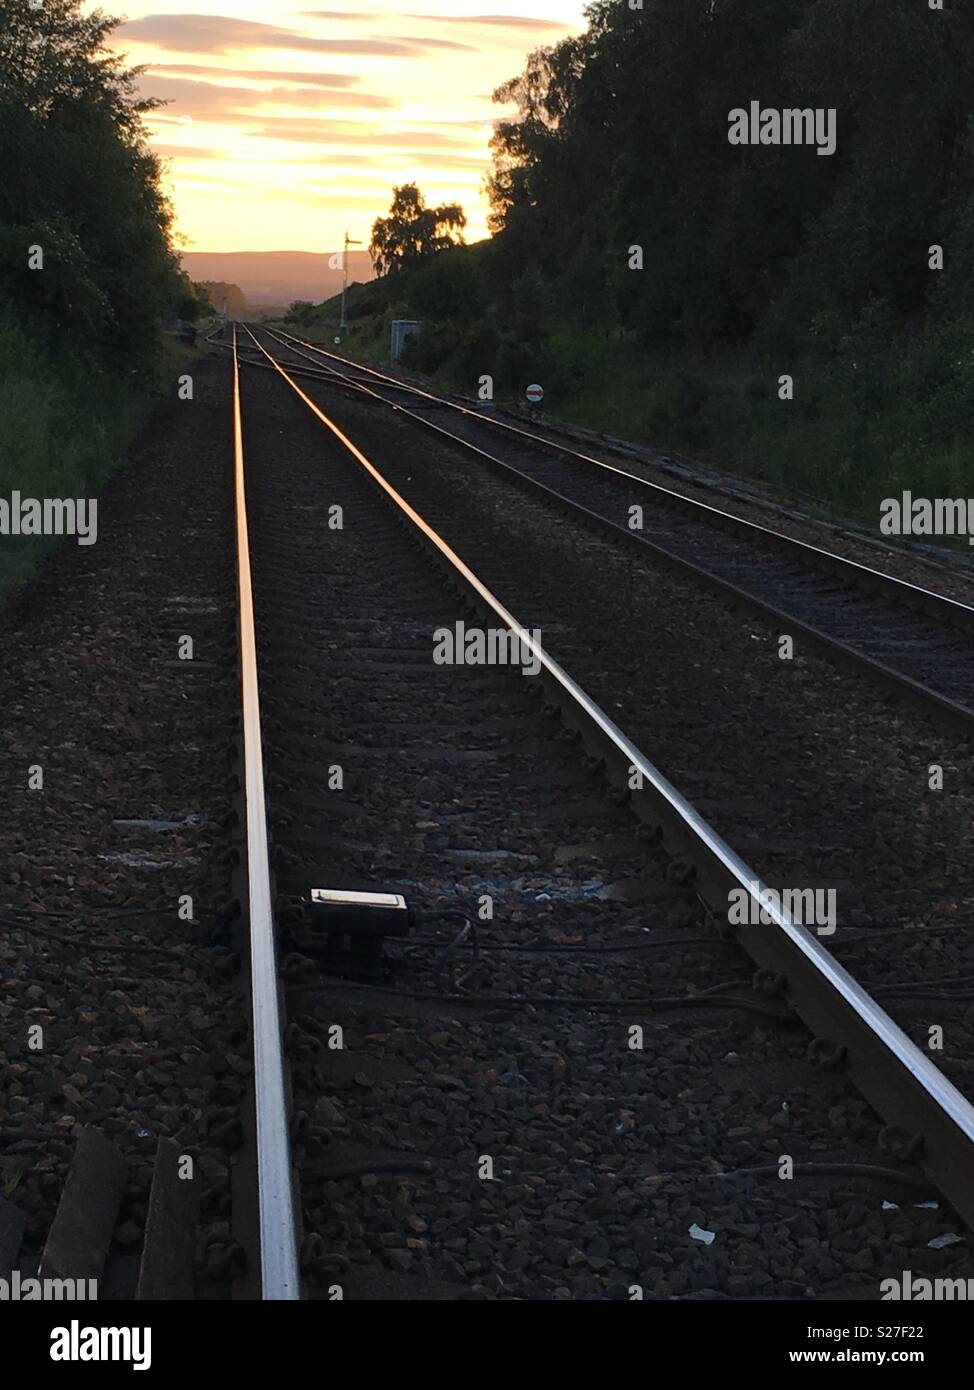 Train tracks running into the distance at sunset, Scotland, UK - Stock Image